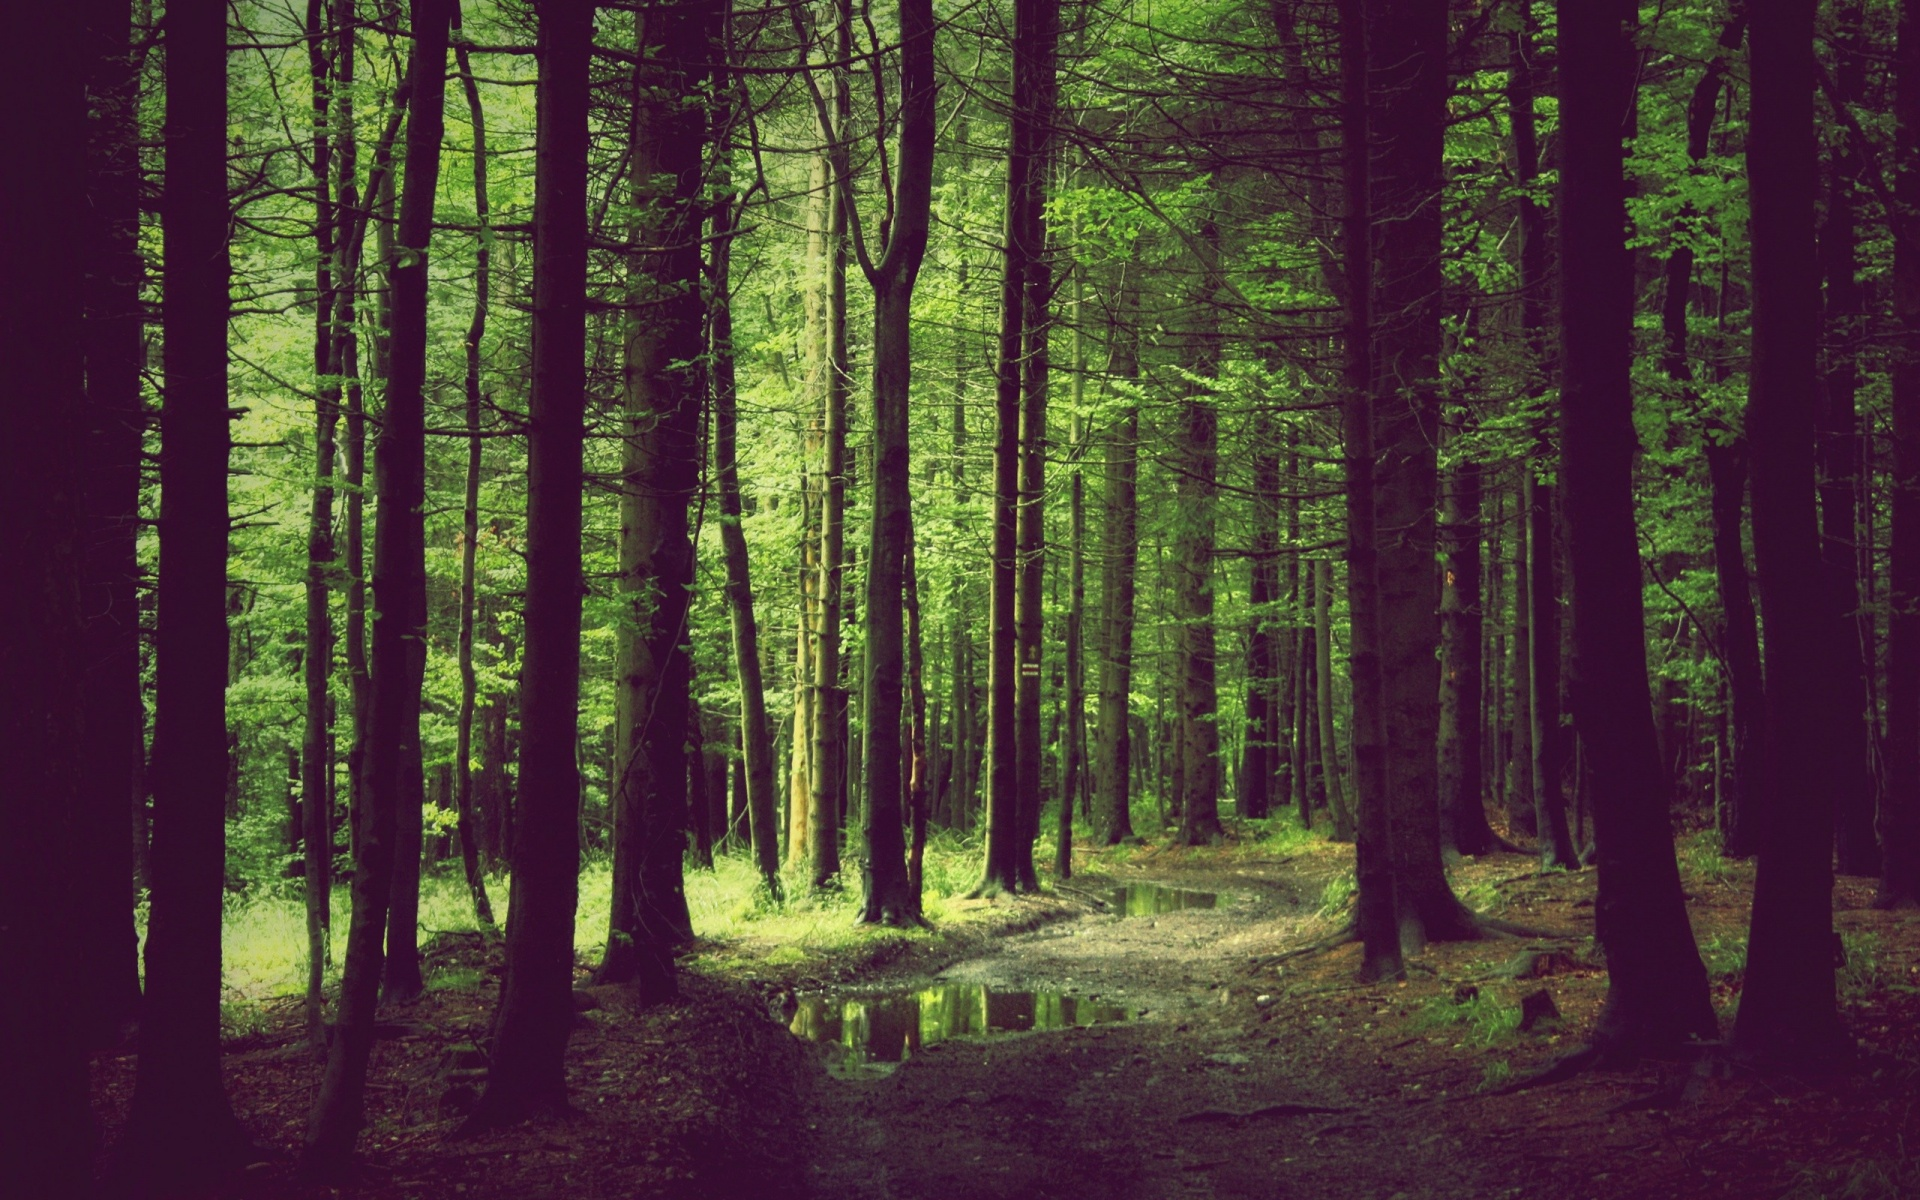 Cool Wallpaper Mac Forest - spring-forest_wallpapers_36412_1920x1200  Trends_169663.jpg